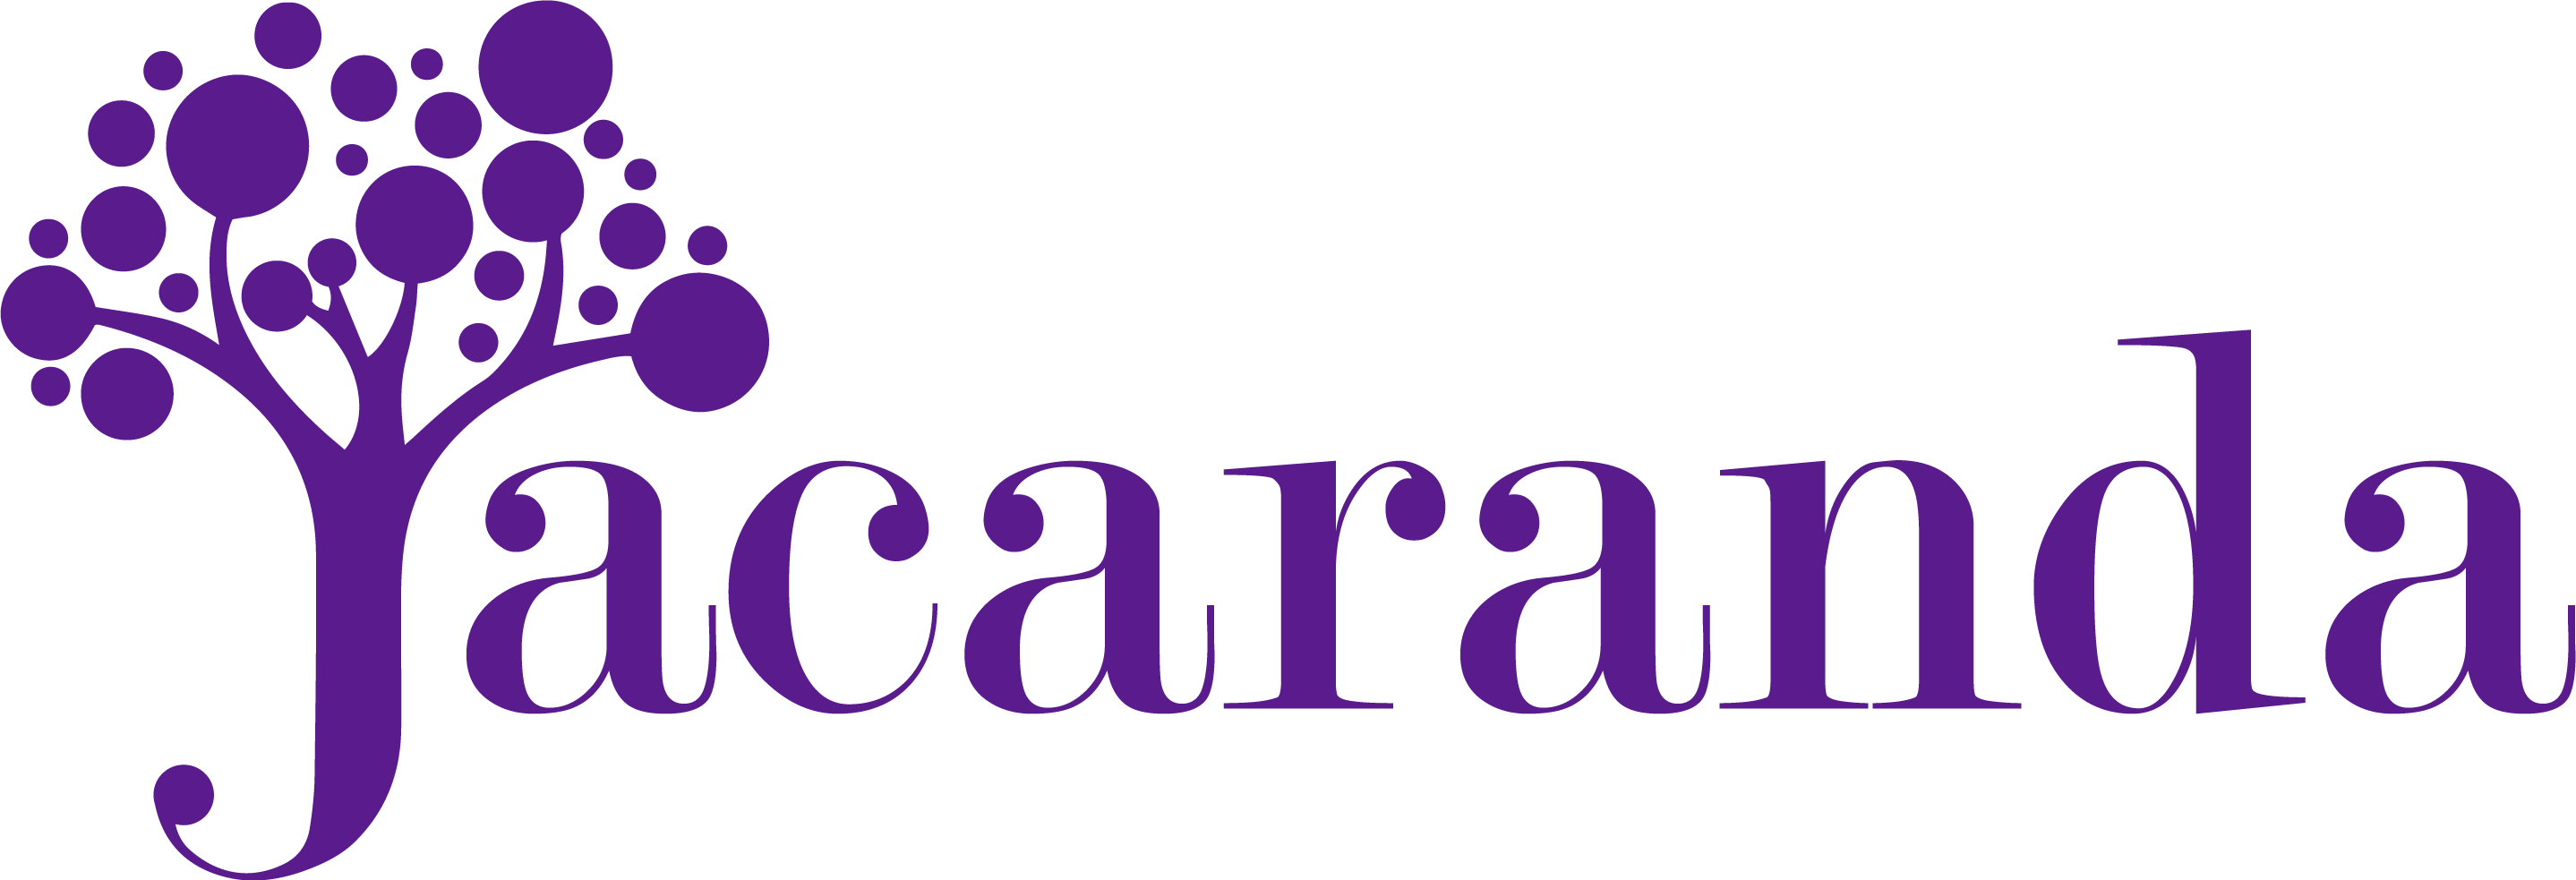 Jacaranda Finance logo